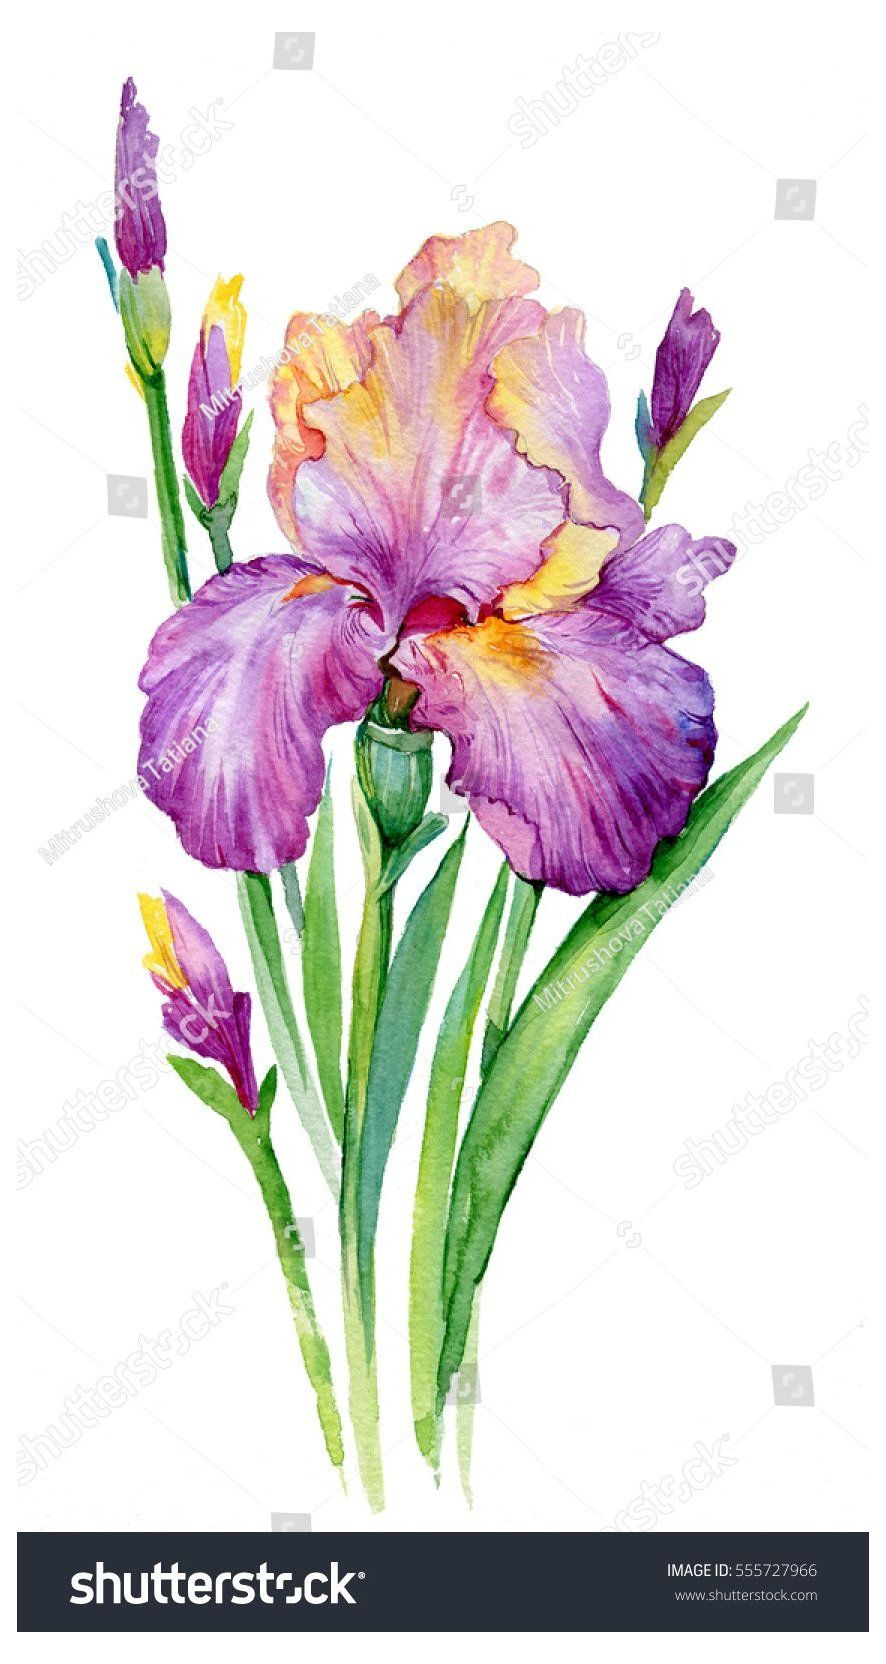 Diy Watercolor Art 60924 Watercolor Art Watercolorart Watercolor Art And How To Create Your Own W In 2020 Iris Painting Watercolor Flowers Paintings Iris Drawing